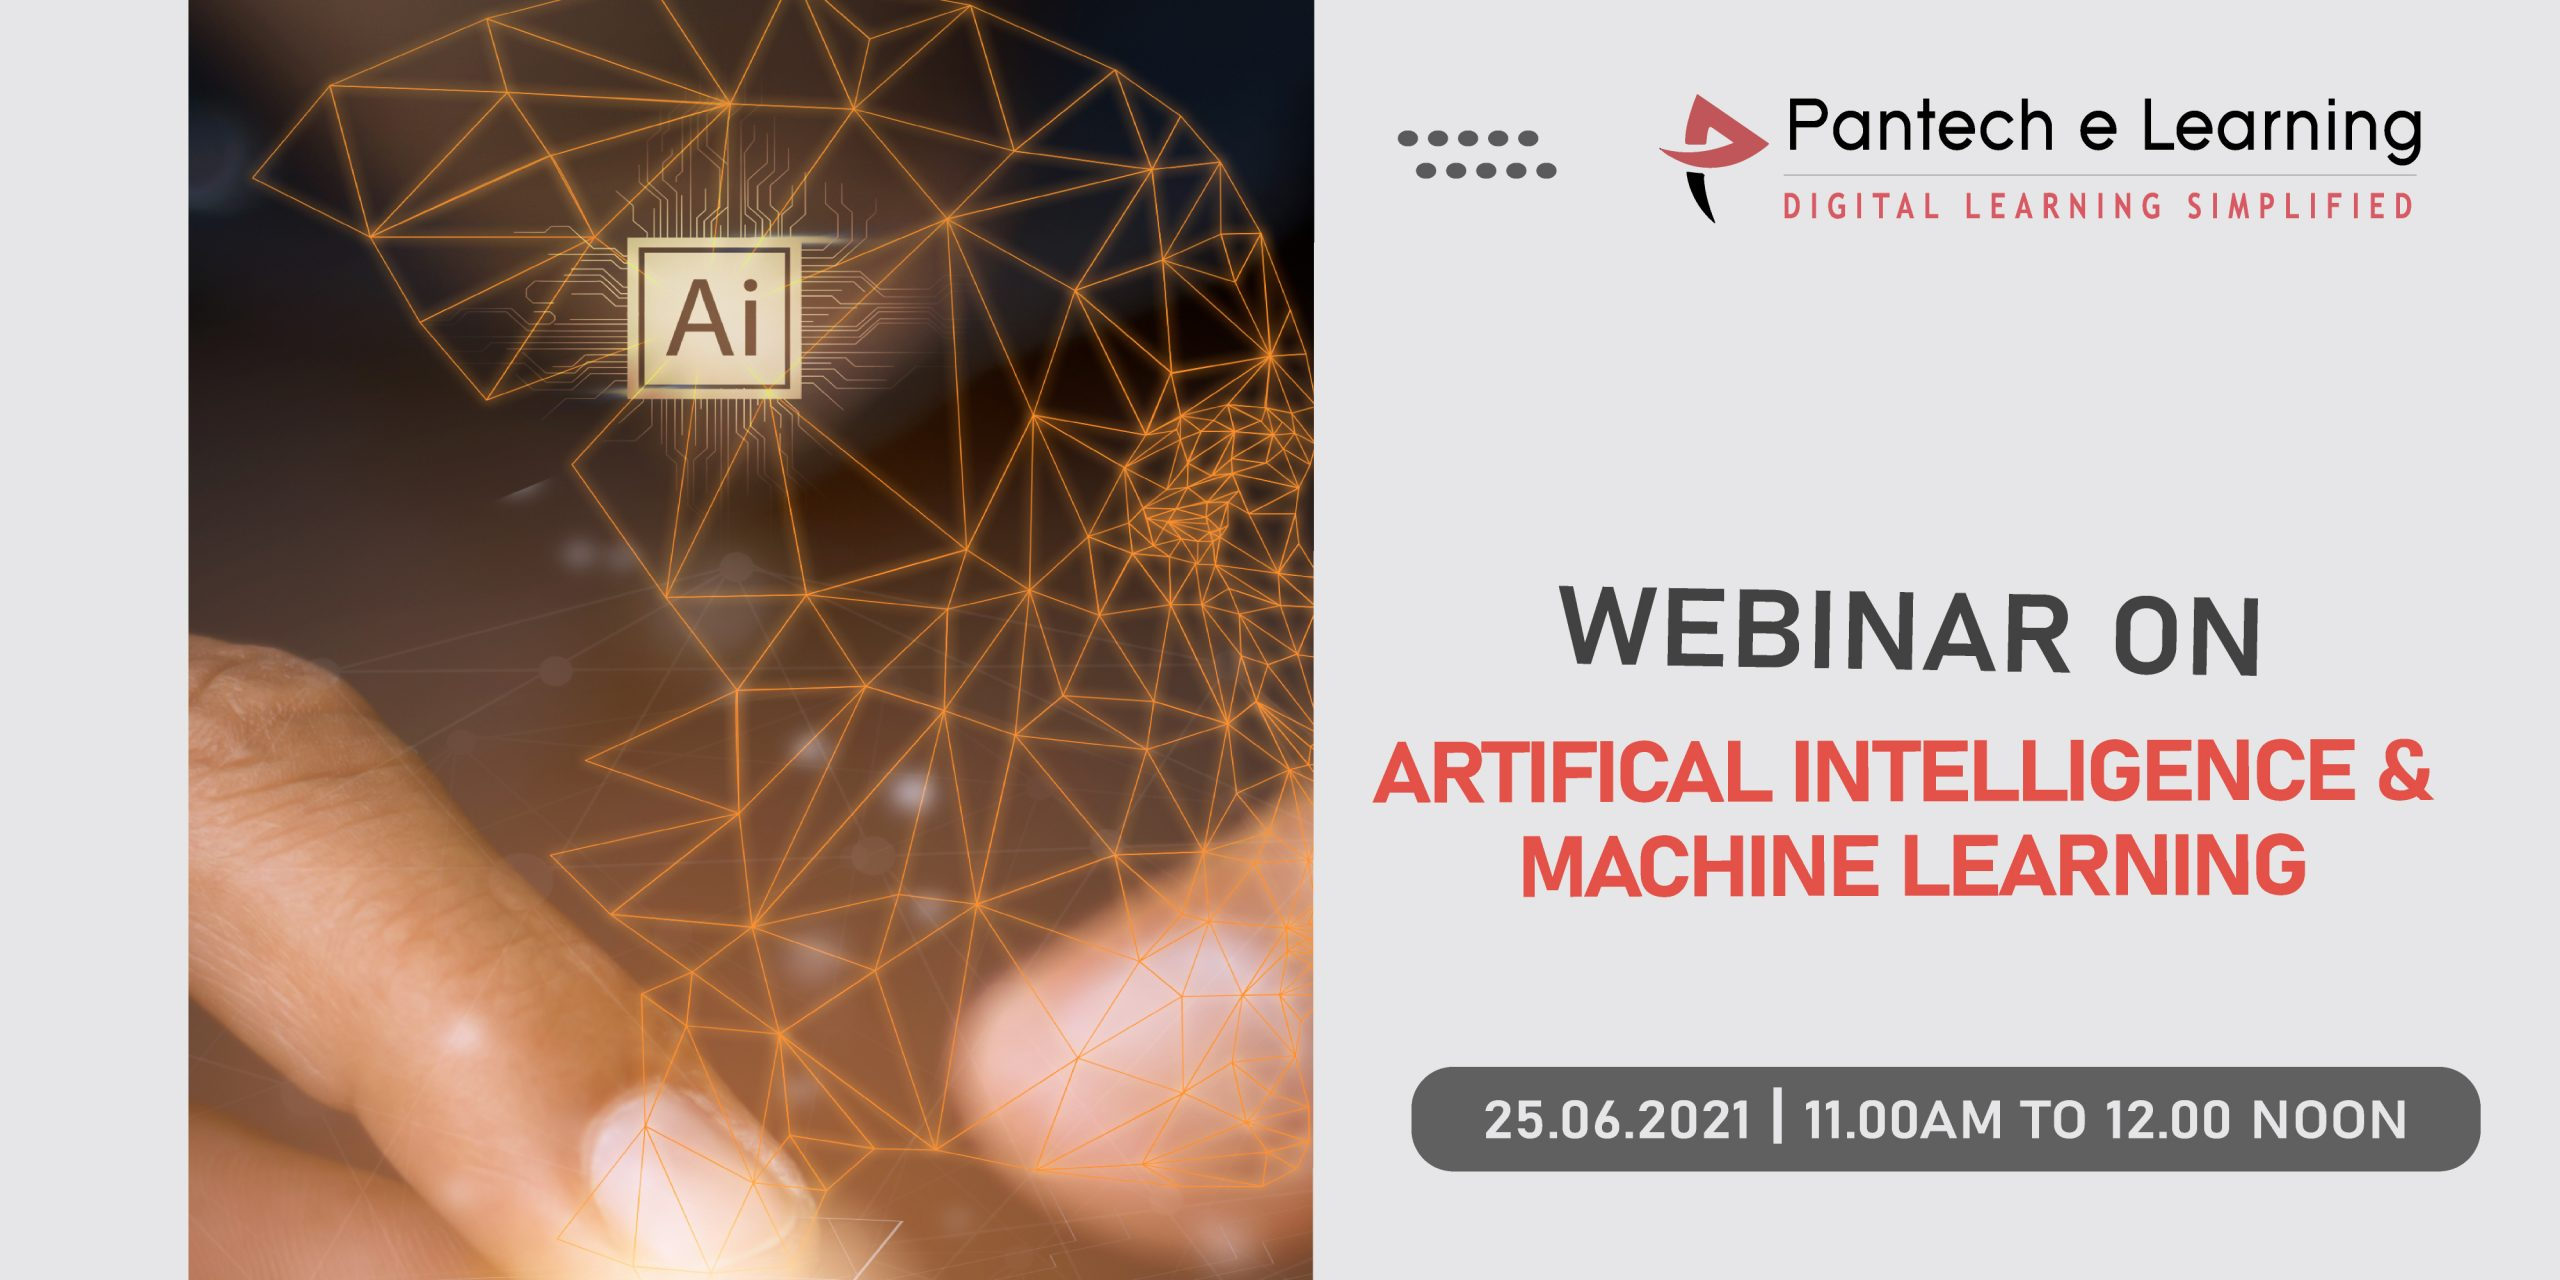 AI Machine Learning SNR institute Pantech eLearning 1